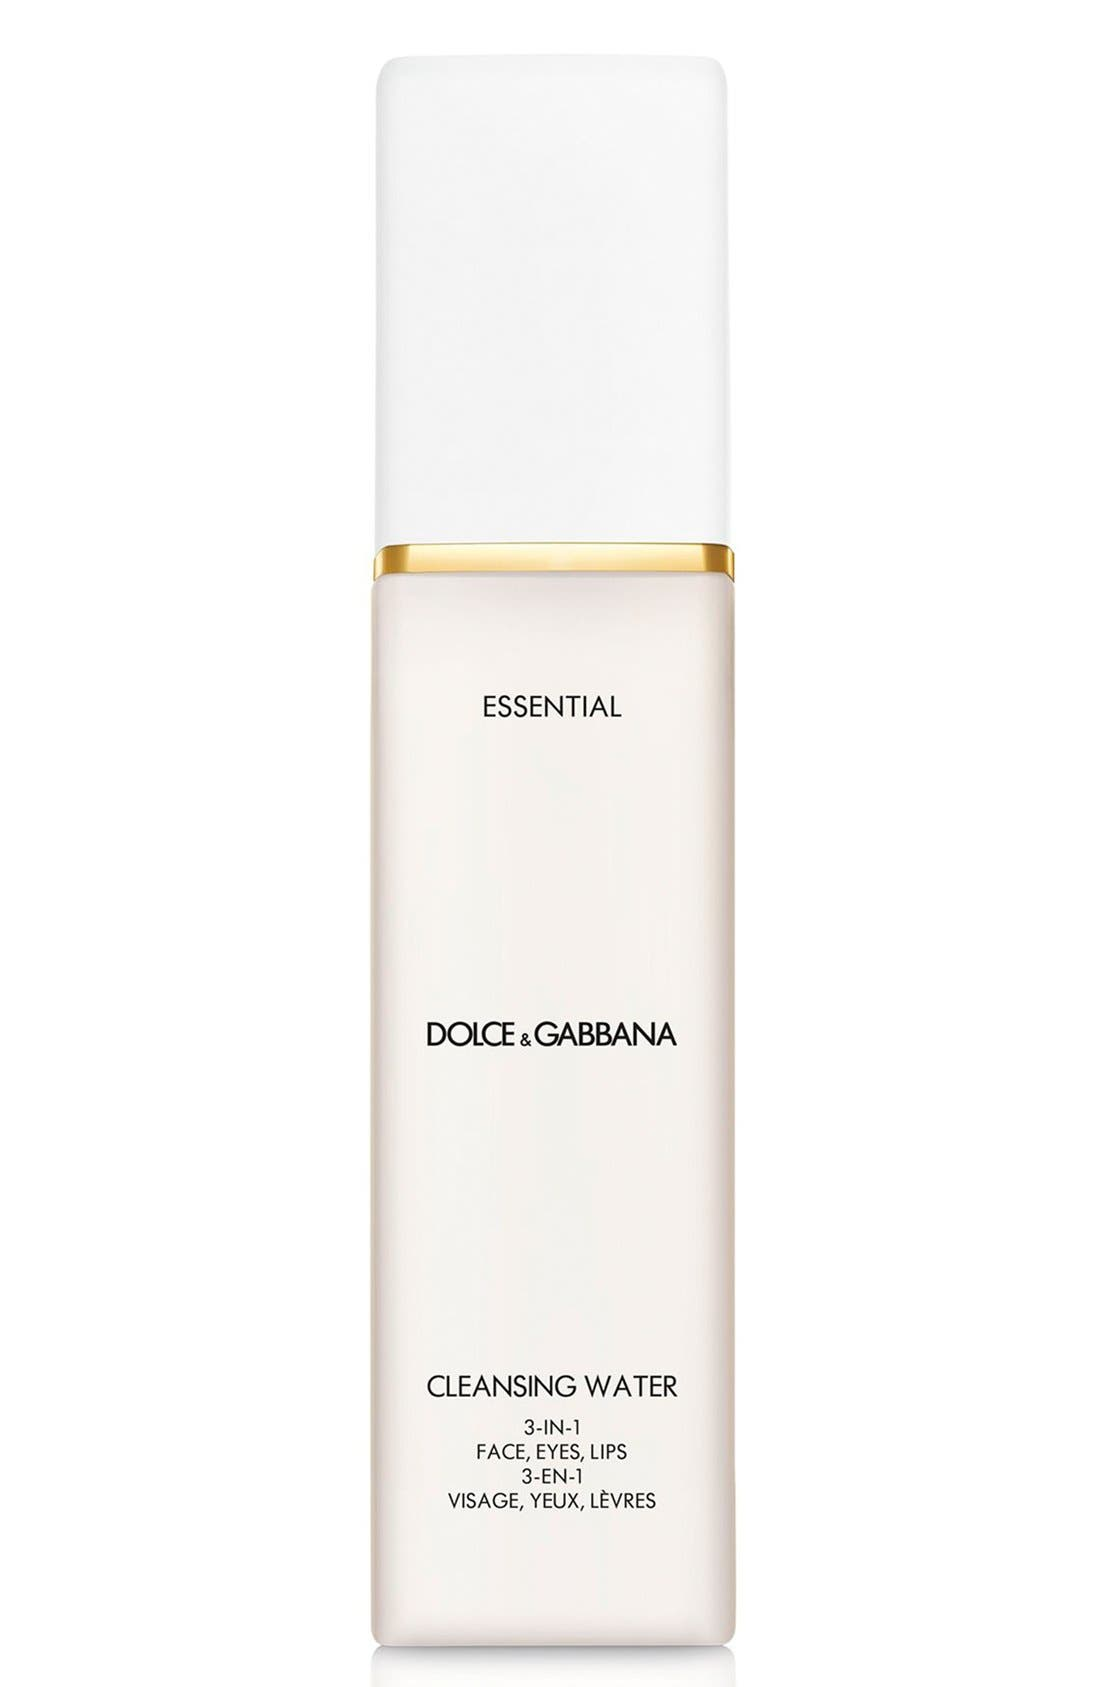 Dolce&Gabbana Beauty 'Essential' Cleansing Water 3-in-1 Face, Eyes, Lips